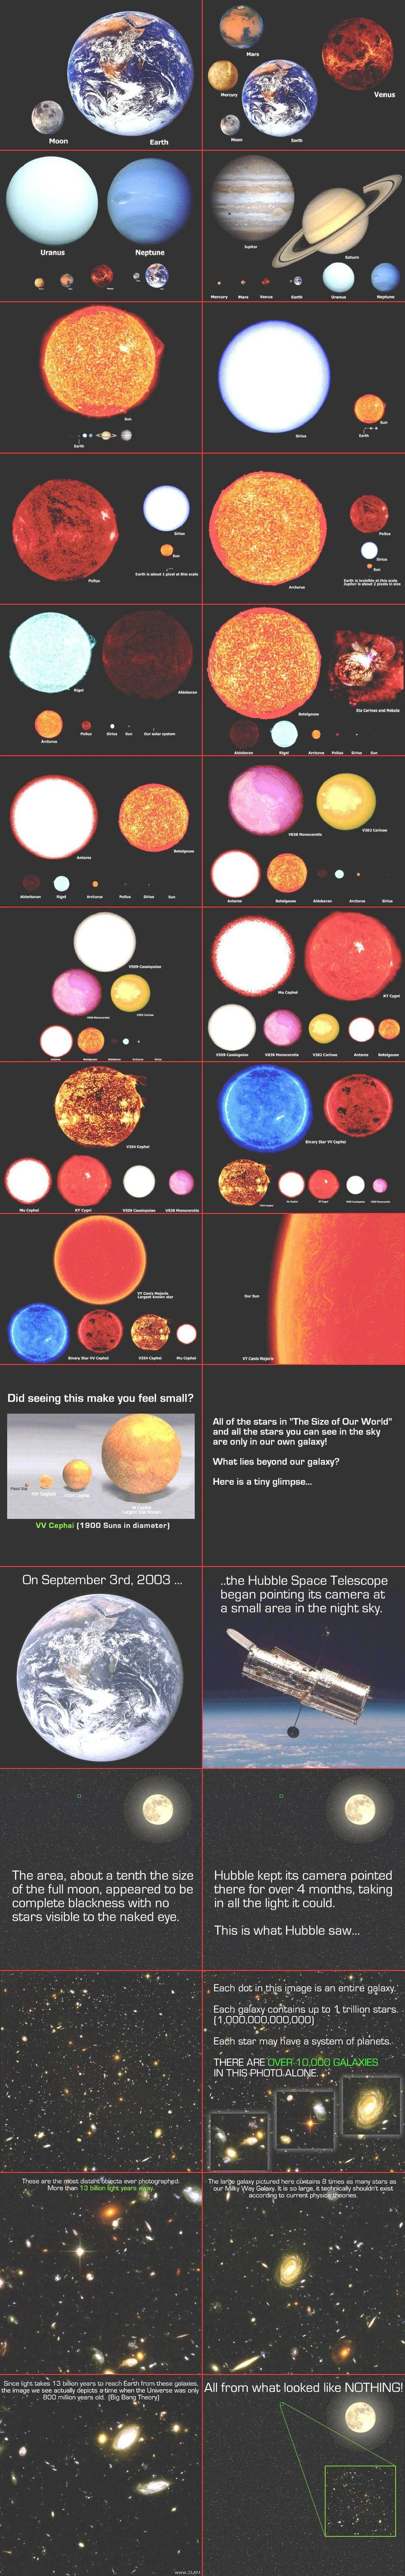 infographics solar system to scale - photo #21